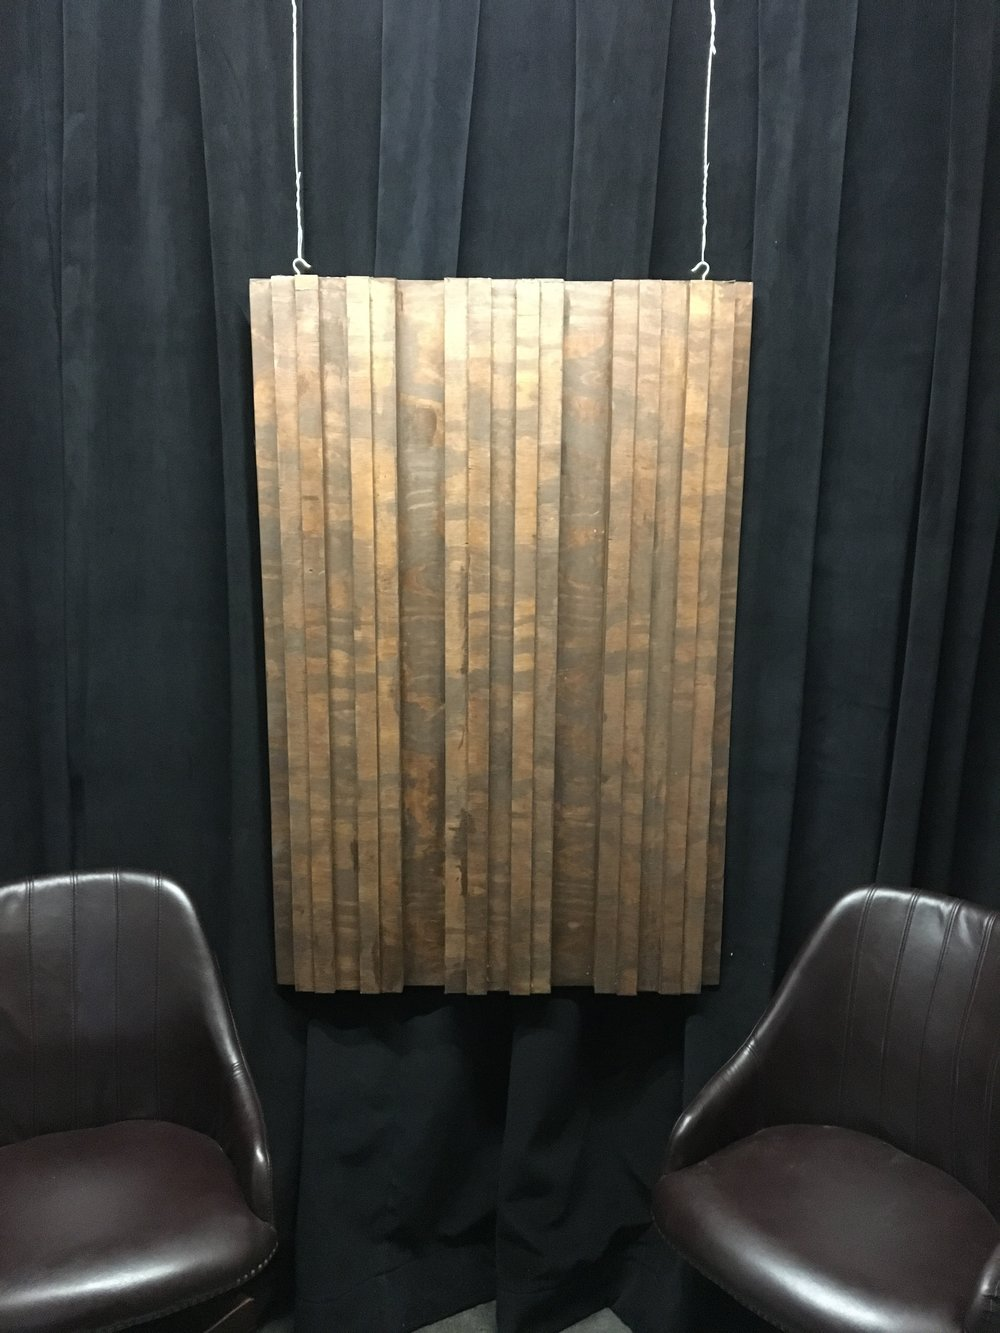 Rose Brand Acoustic Curtain and Custom Diffuser on Top